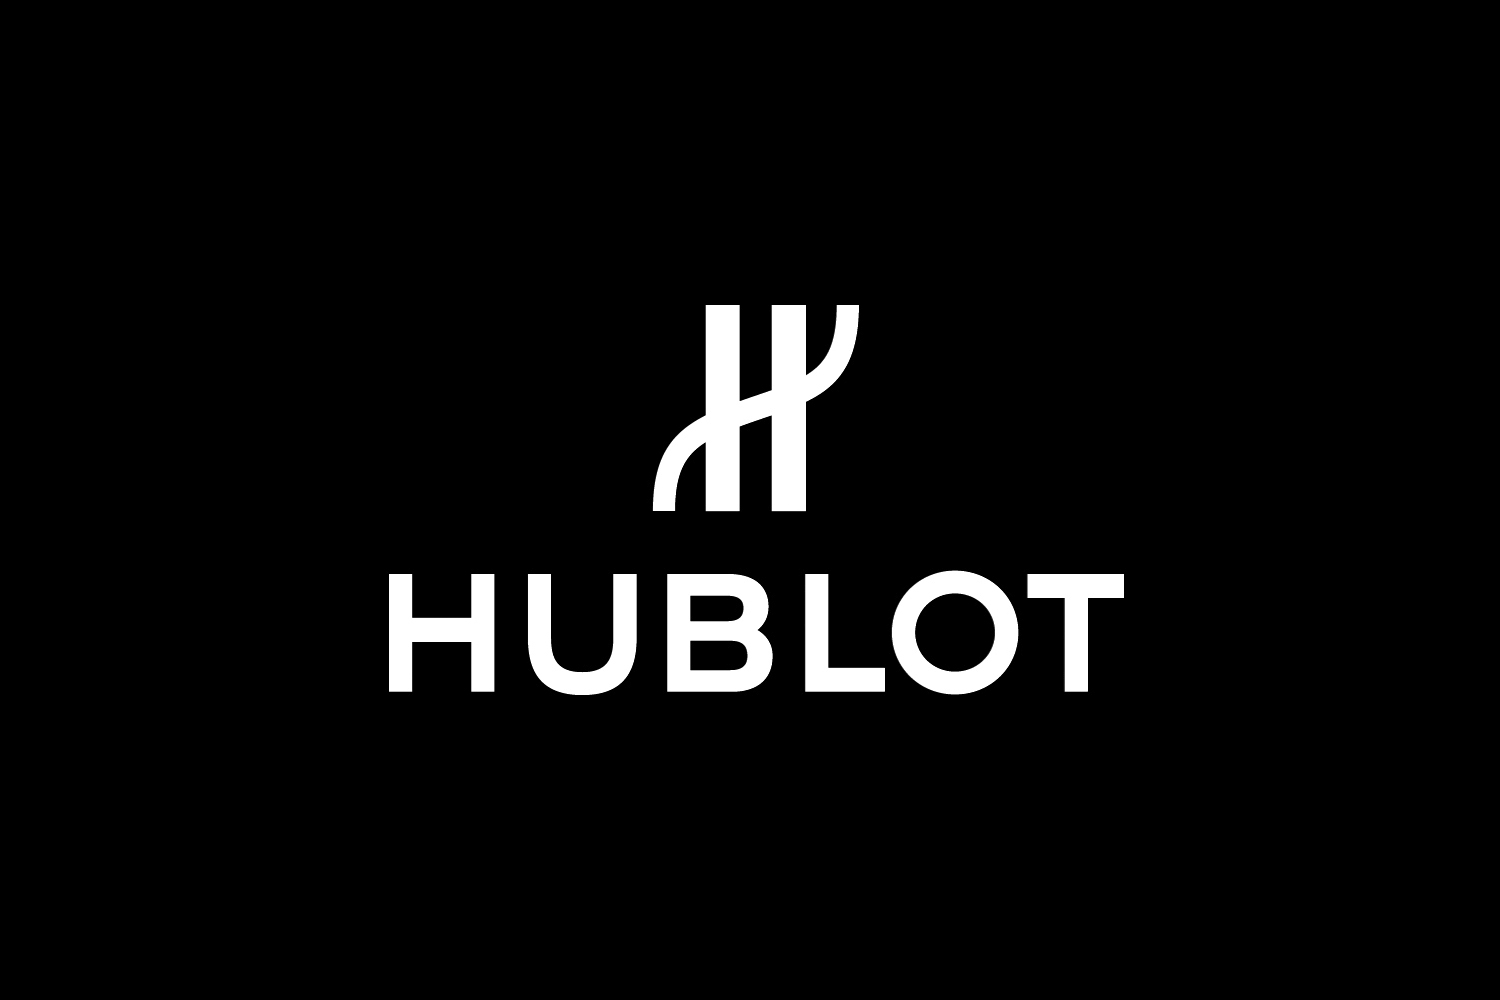 Hublot by The Hour Glass